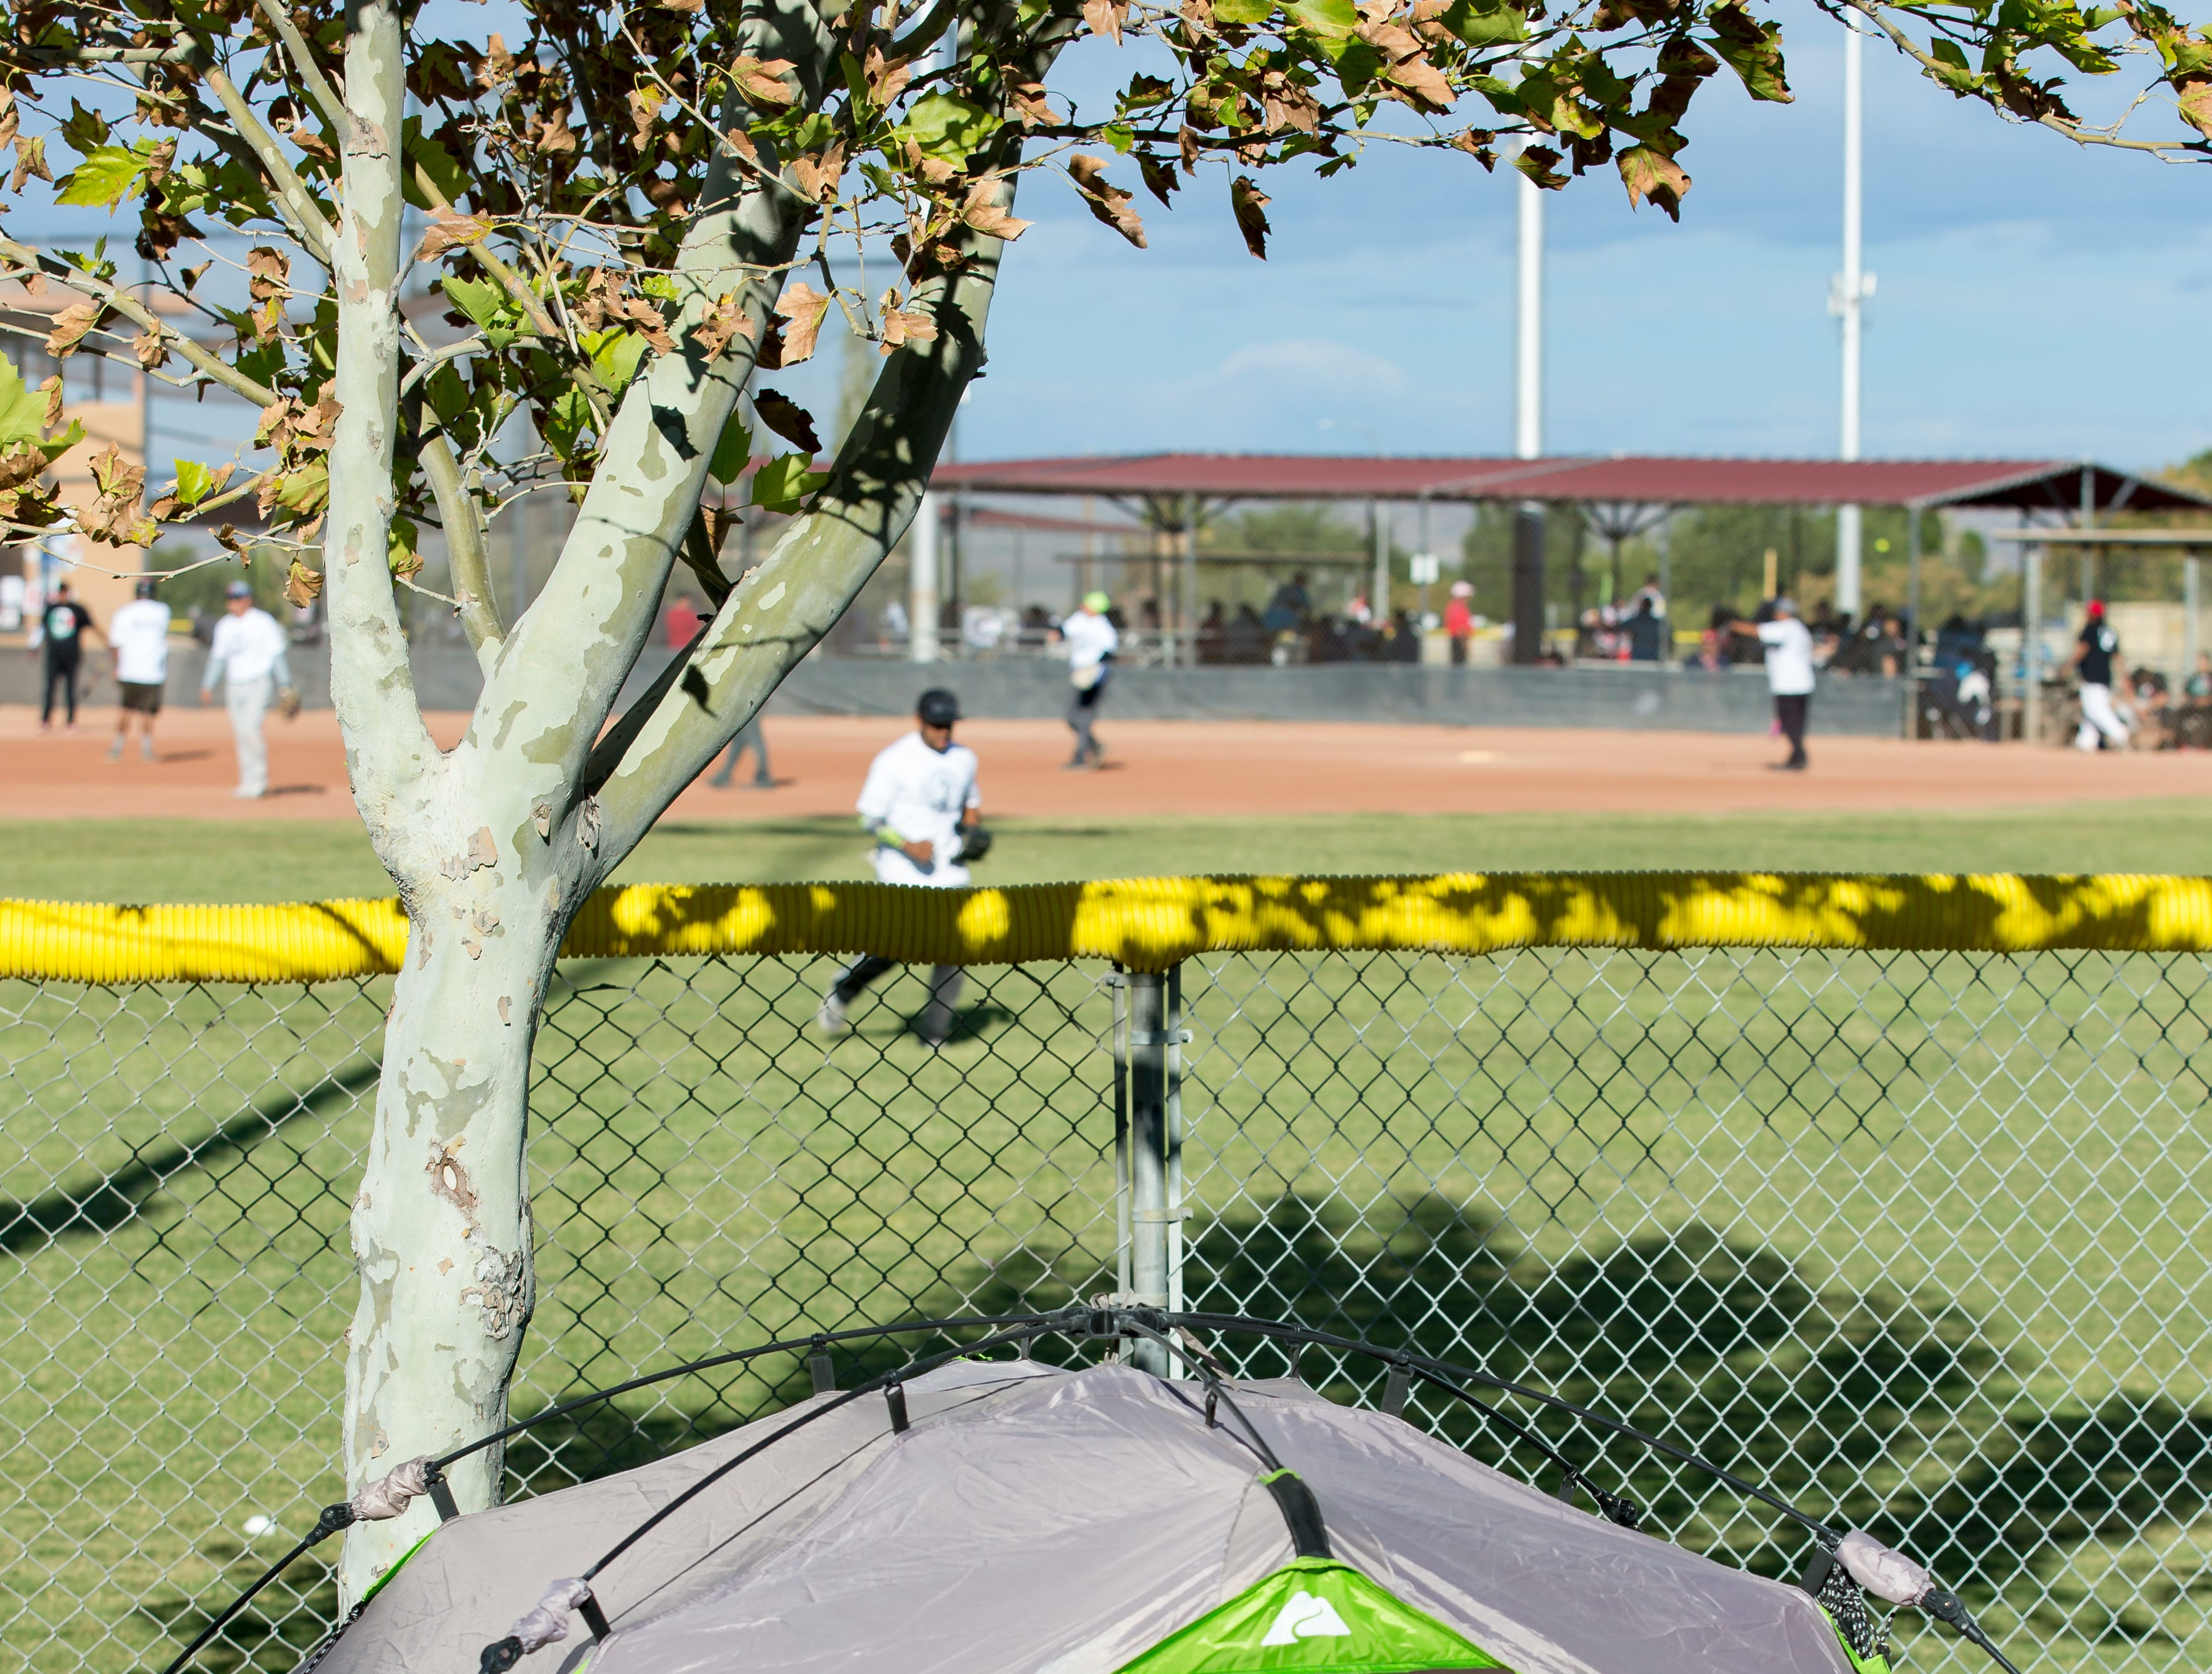 Jacen Brown, 11, of El Paso, Texas, sleeps in his tent while tournament play continues in the background  on Sunday, Oct. 7, 2018 during the 39th Whole Enchilada Invitational softball tournament at the Hadley complex.